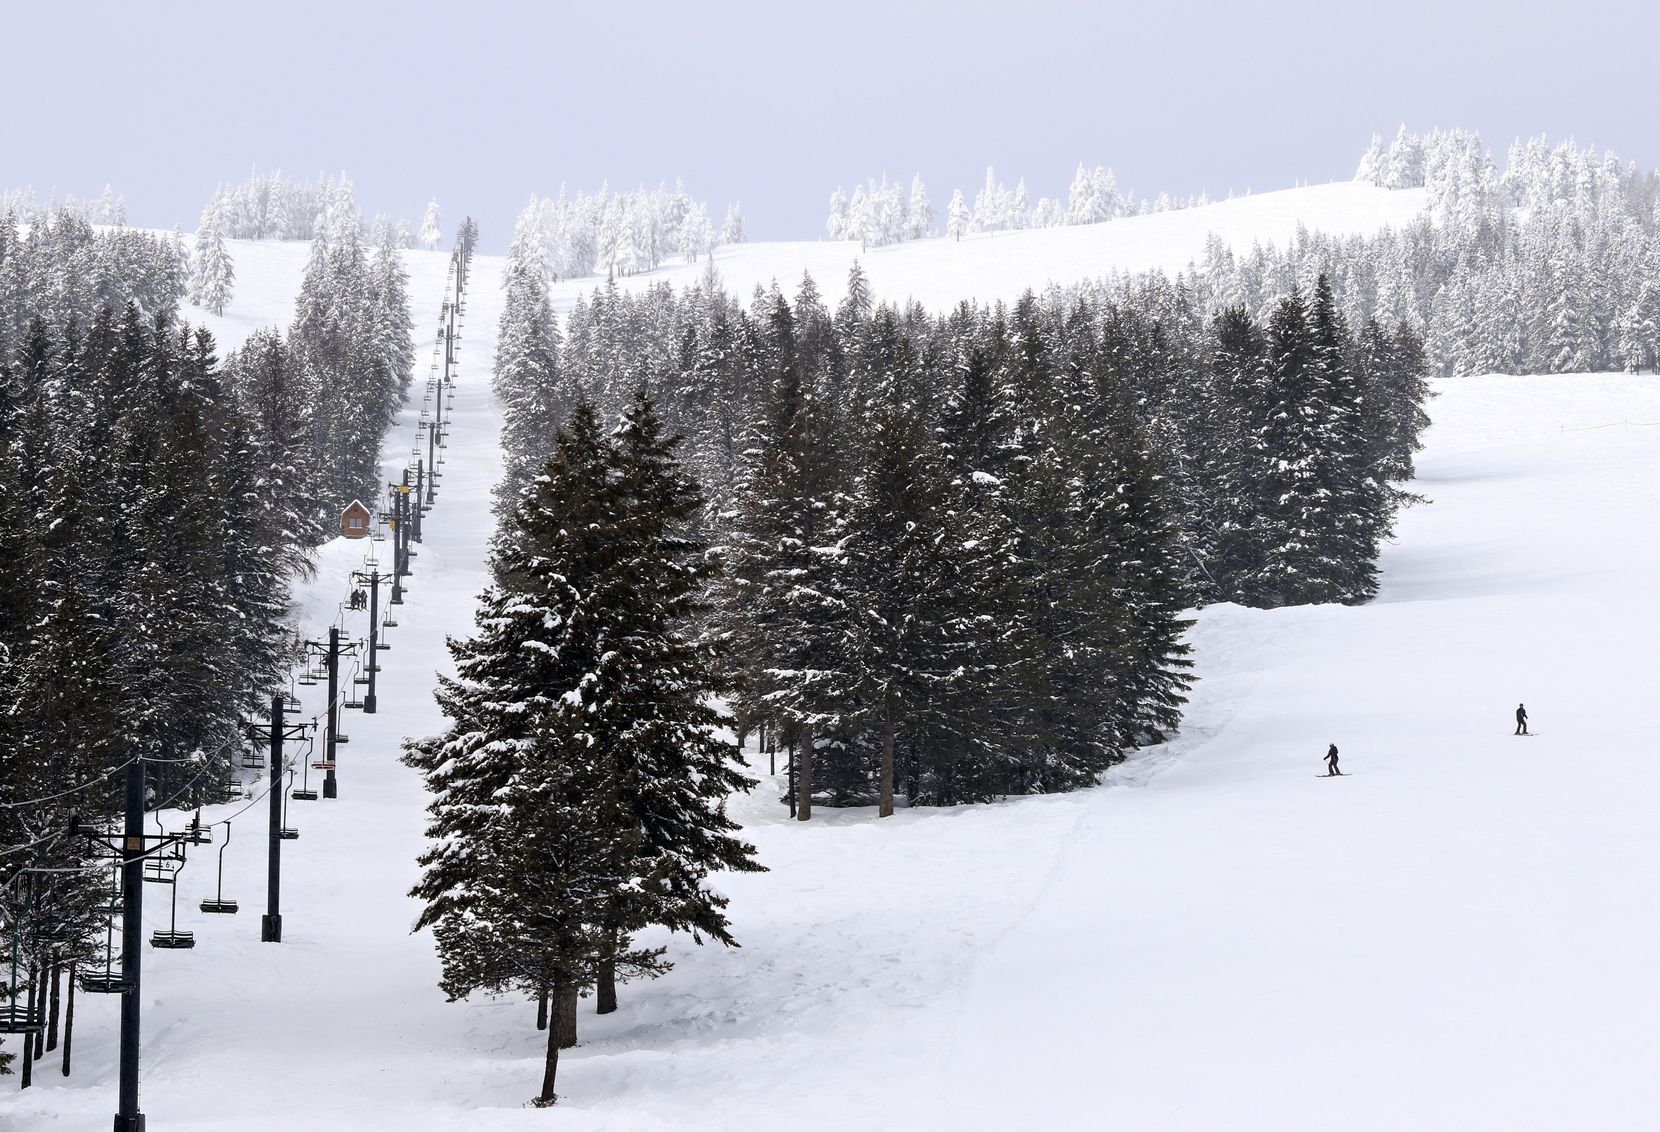 An adult day pass at Turner Mountain is $38, far less than the typical ski resort. Still, it's common for visitors to have the slopes mostly to themselves.